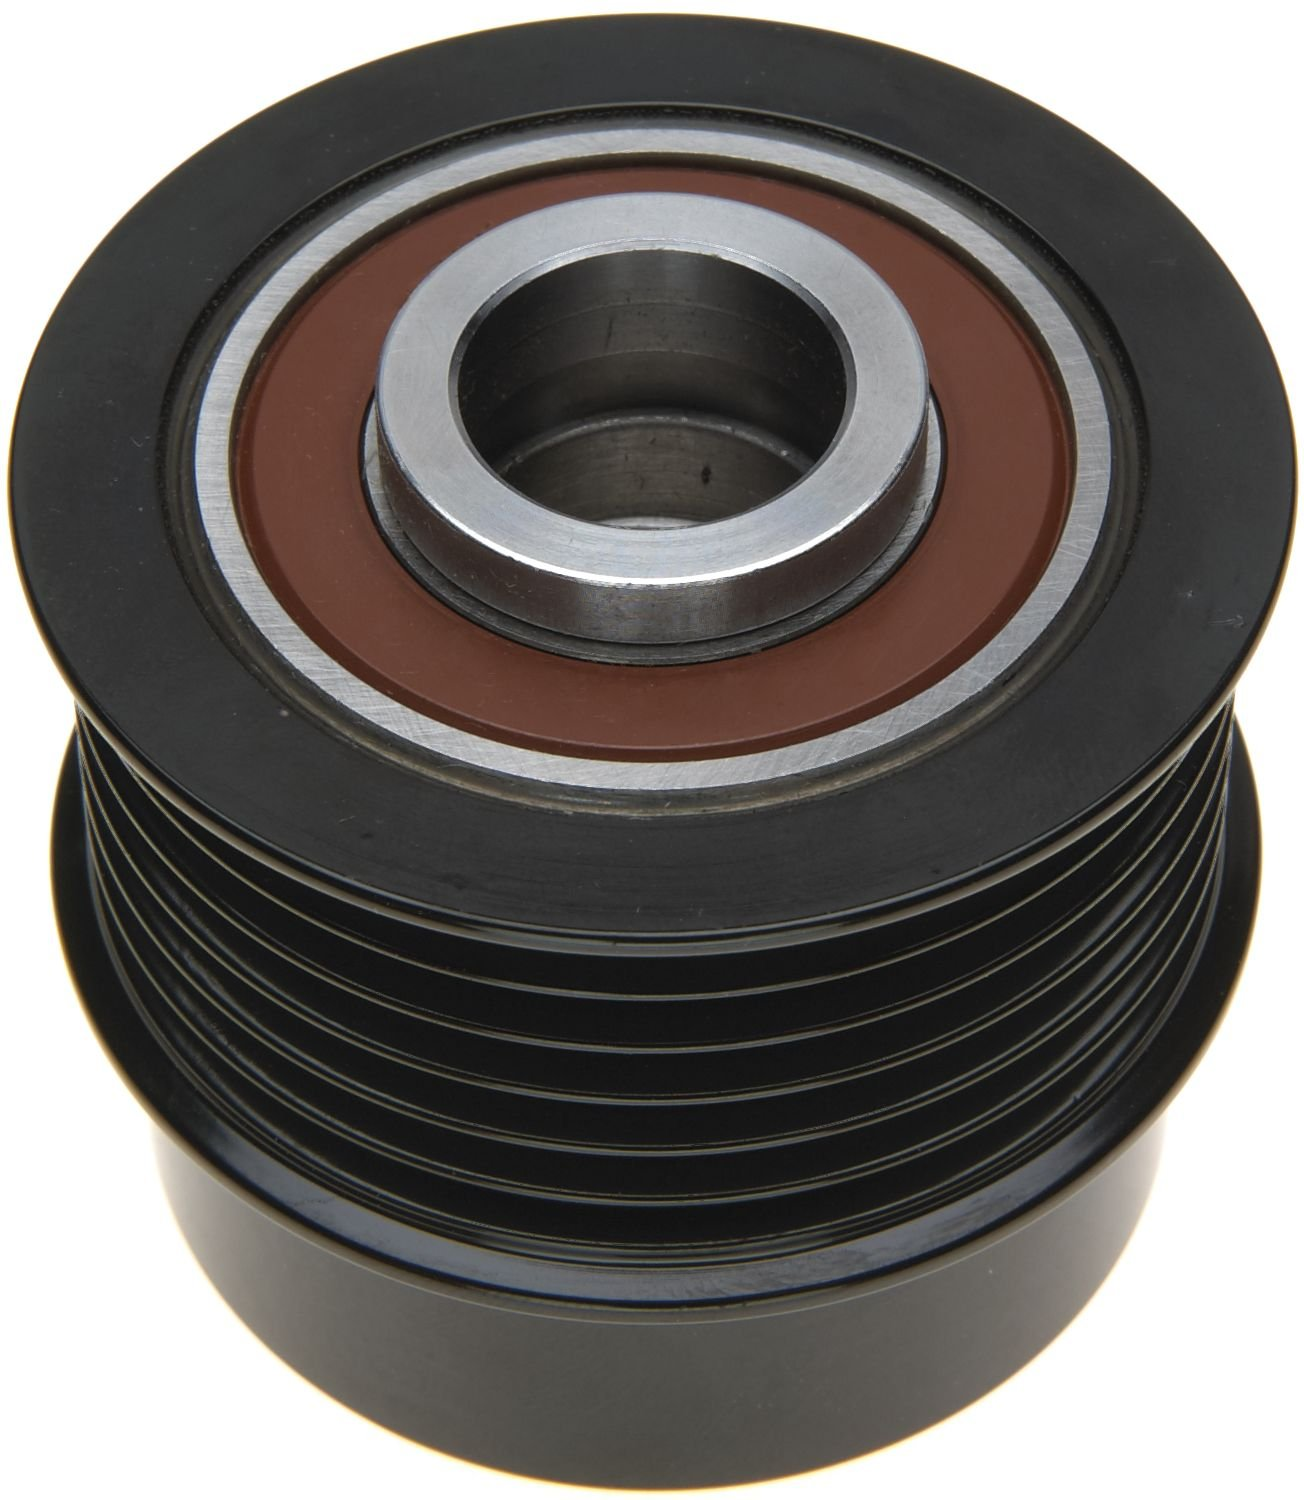 ACDelco 37004P Professional Alternator Decoupler Pulley with Dust Cap 37004P-ACD